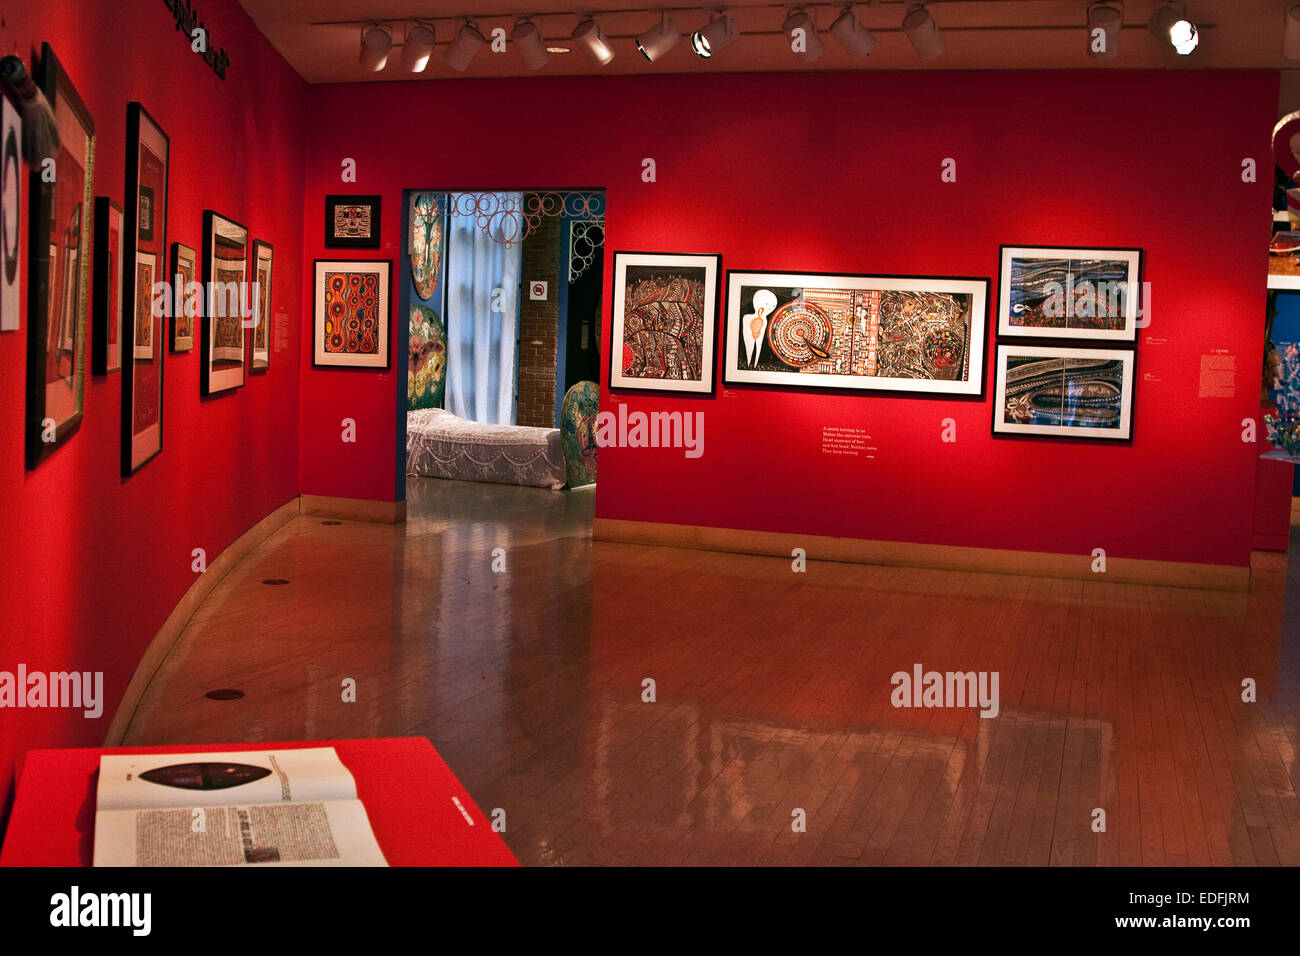 American Visionary Art Museum, Baltimore, Maryland, AVAM, A gallery of visionary art in the museum - Stock Image